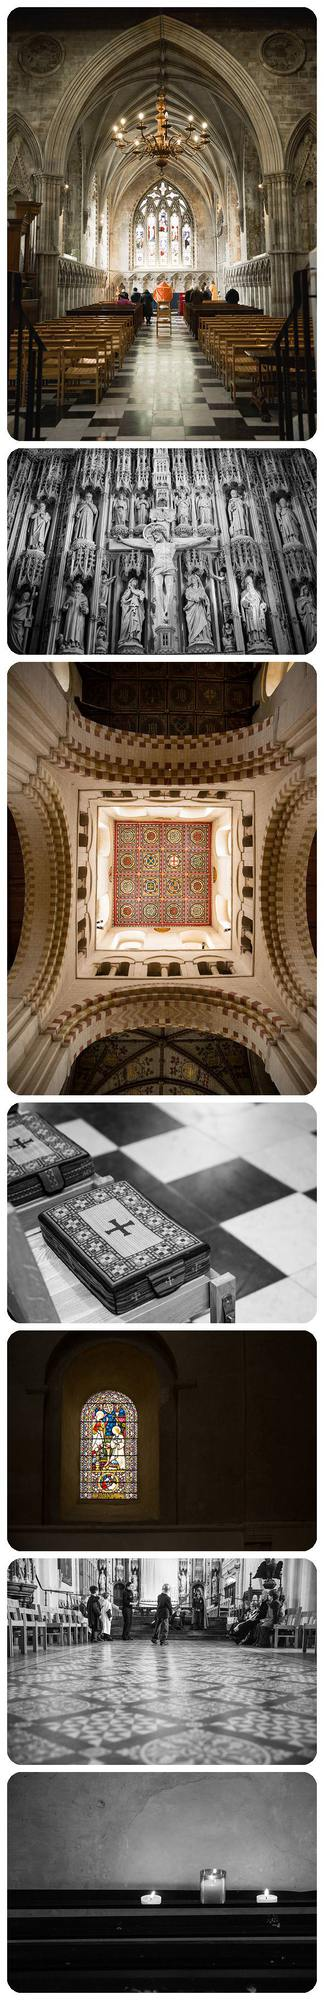 Photographing St Albans Cathedral